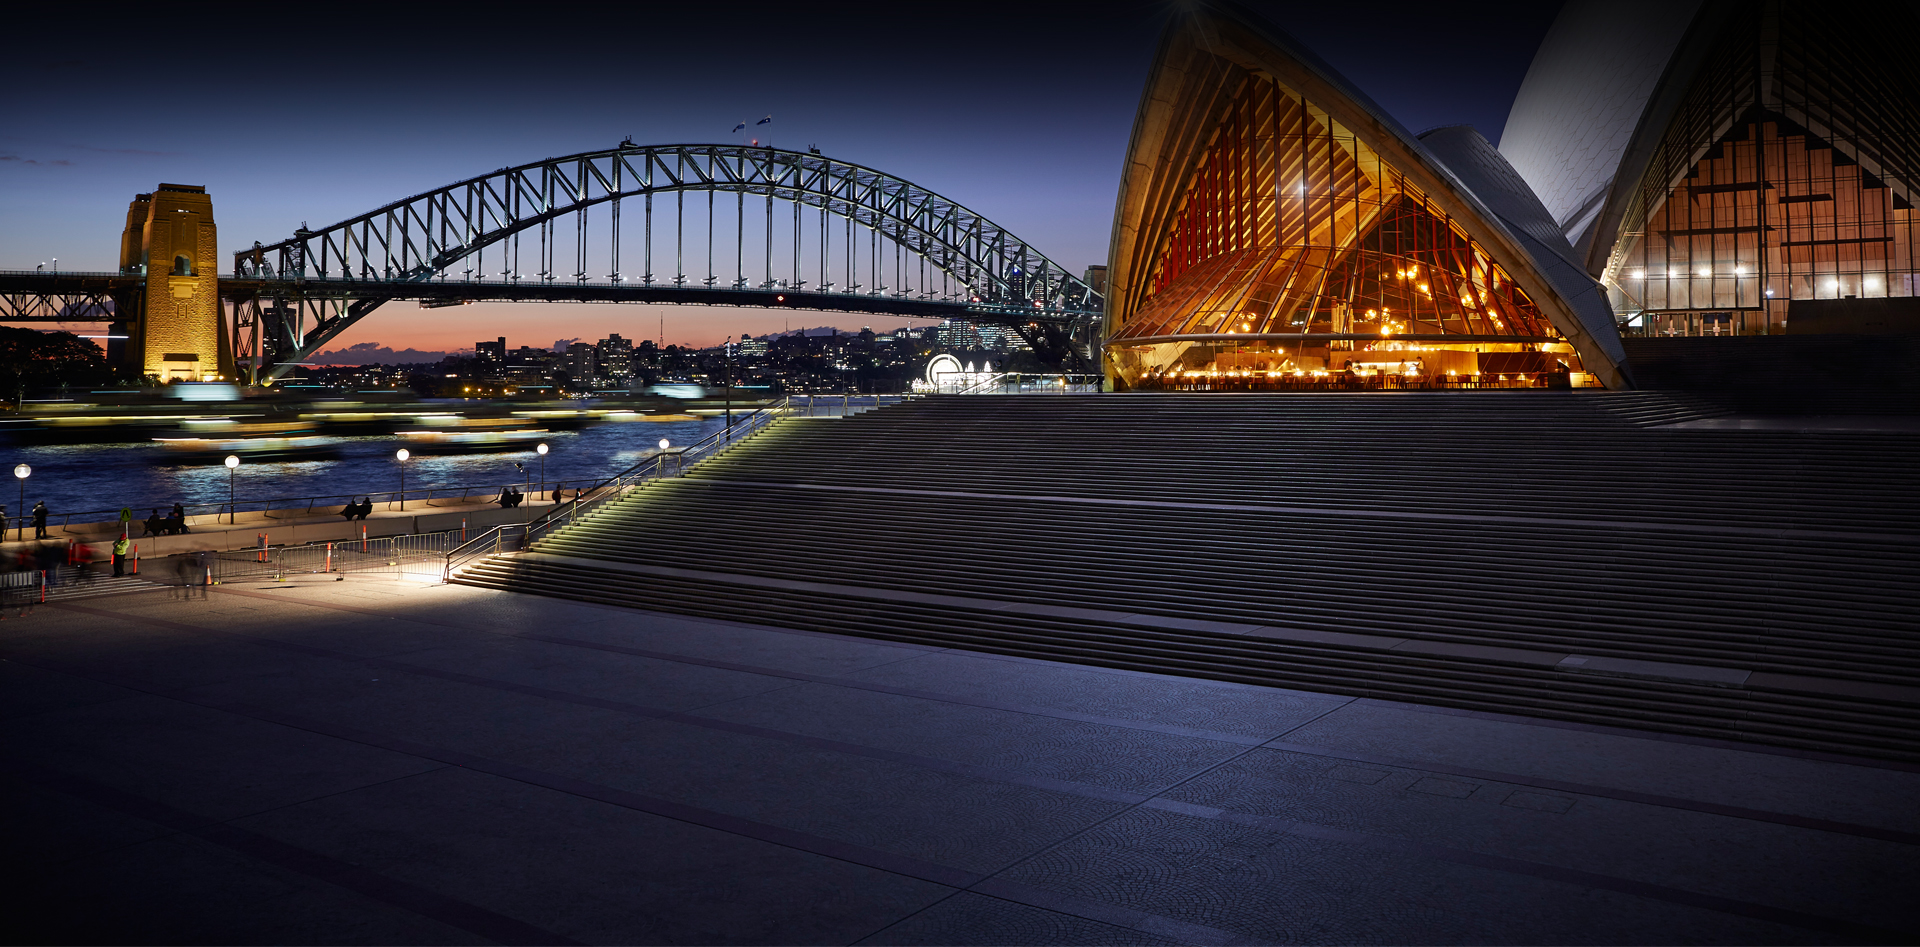 Image courtesy of Bennelong